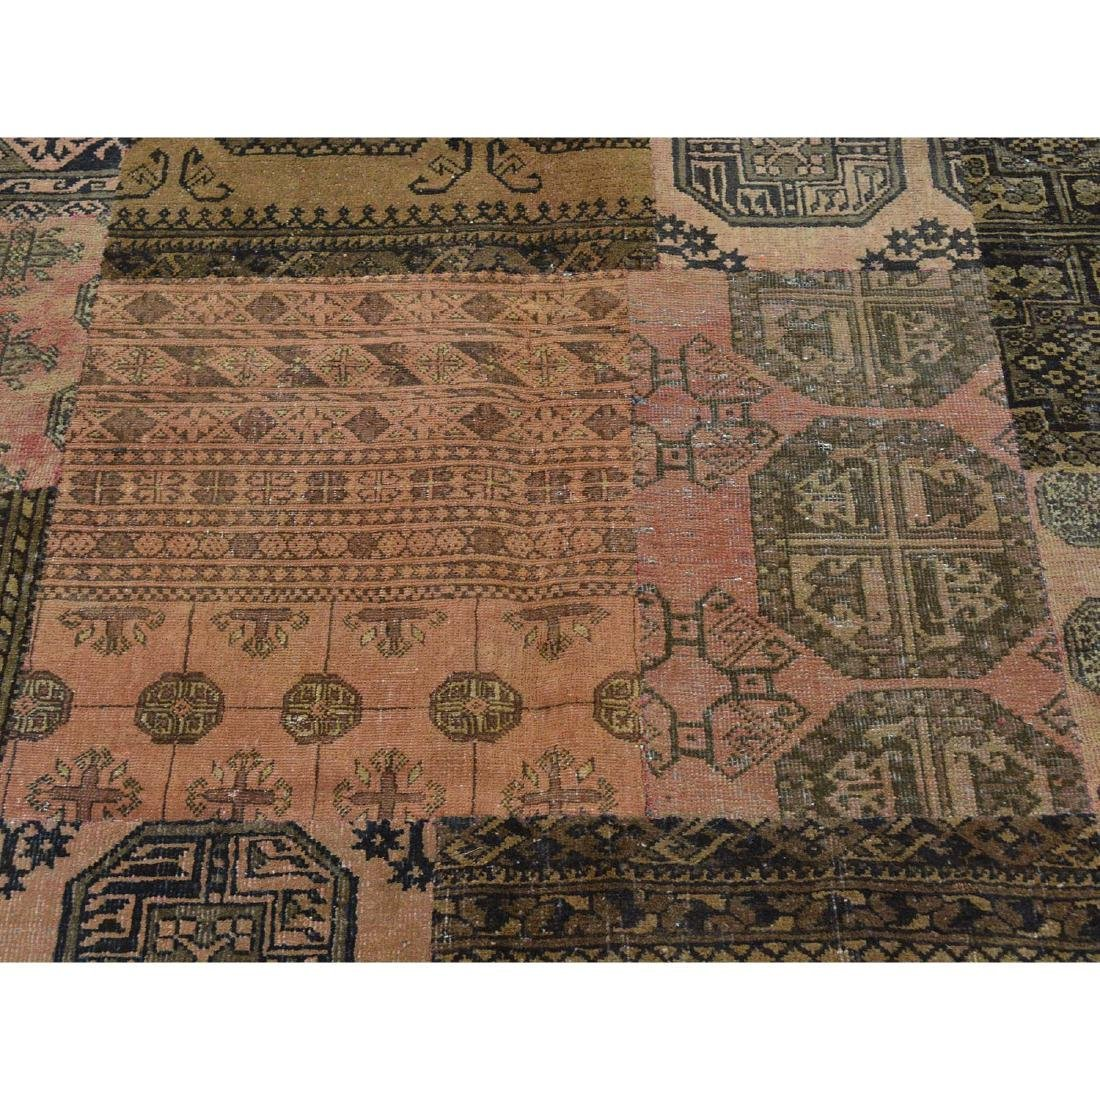 Pure Wool Afghan Patchwork Hand Knotted Rug 9x12 - 4